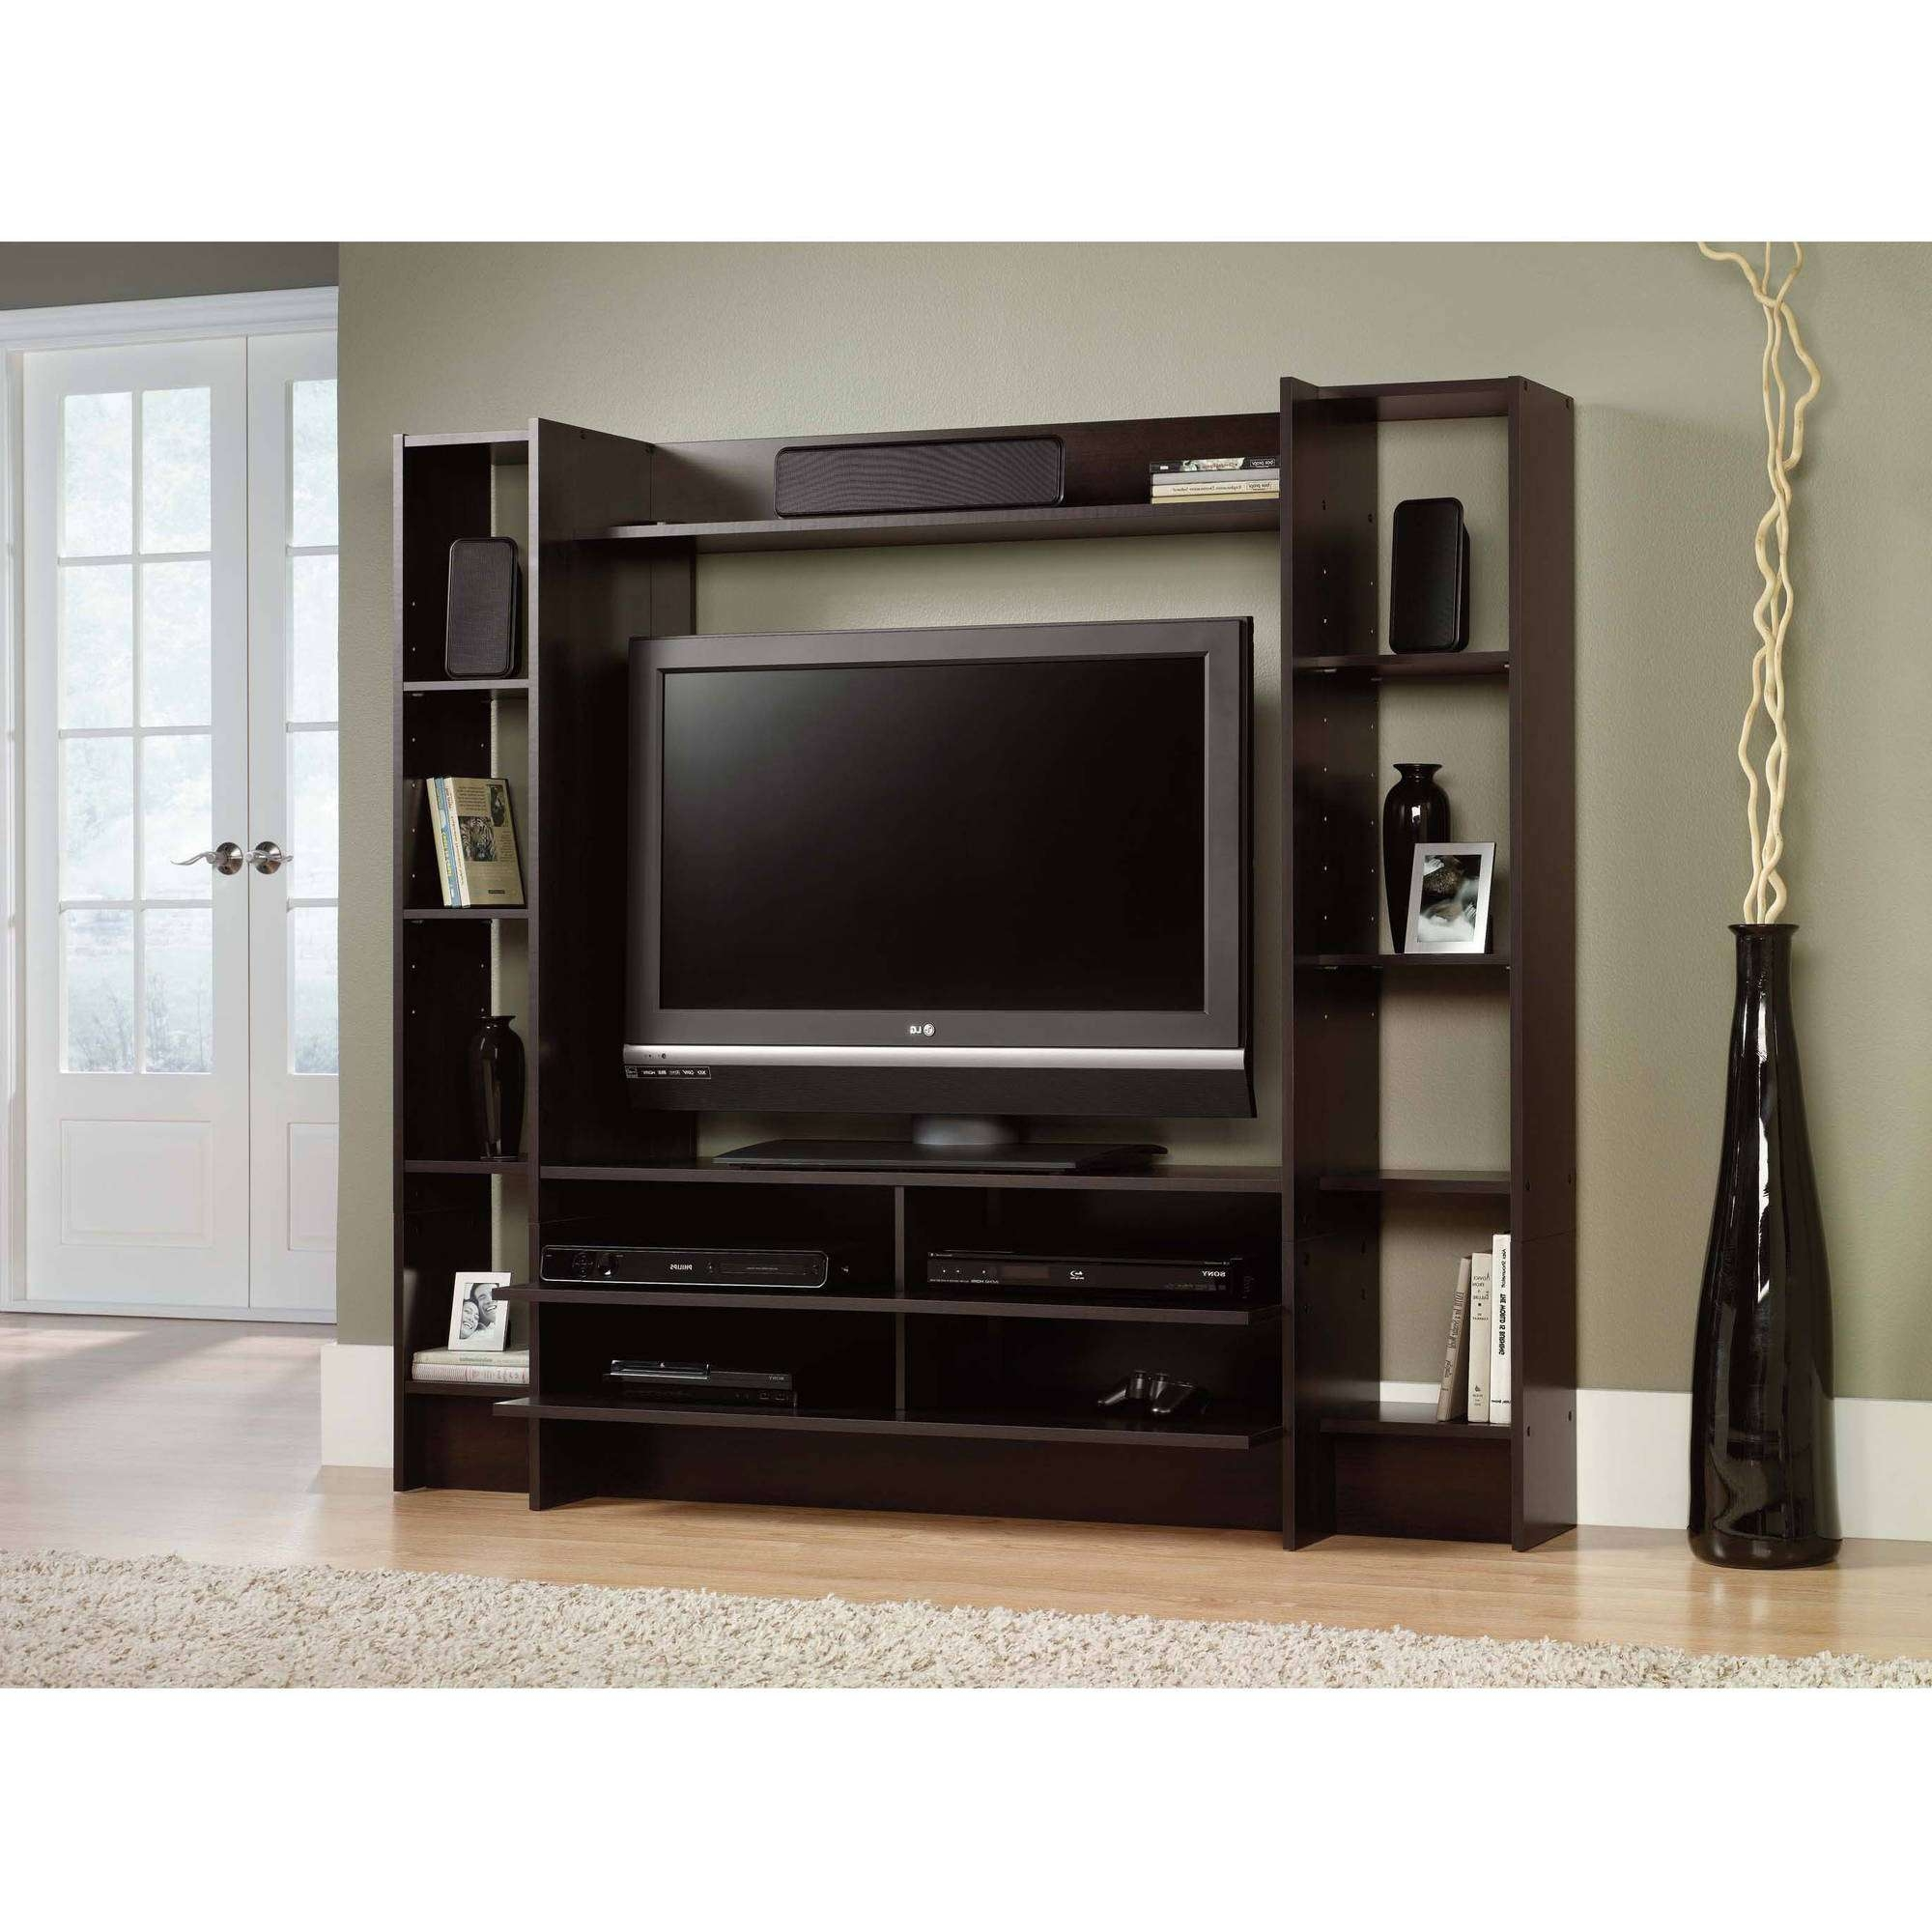 Excellent Wall Media Cabinet Mounted Console Walmart Brown Wooden With Regard To Tv Cabinets With Storage (View 18 of 20)